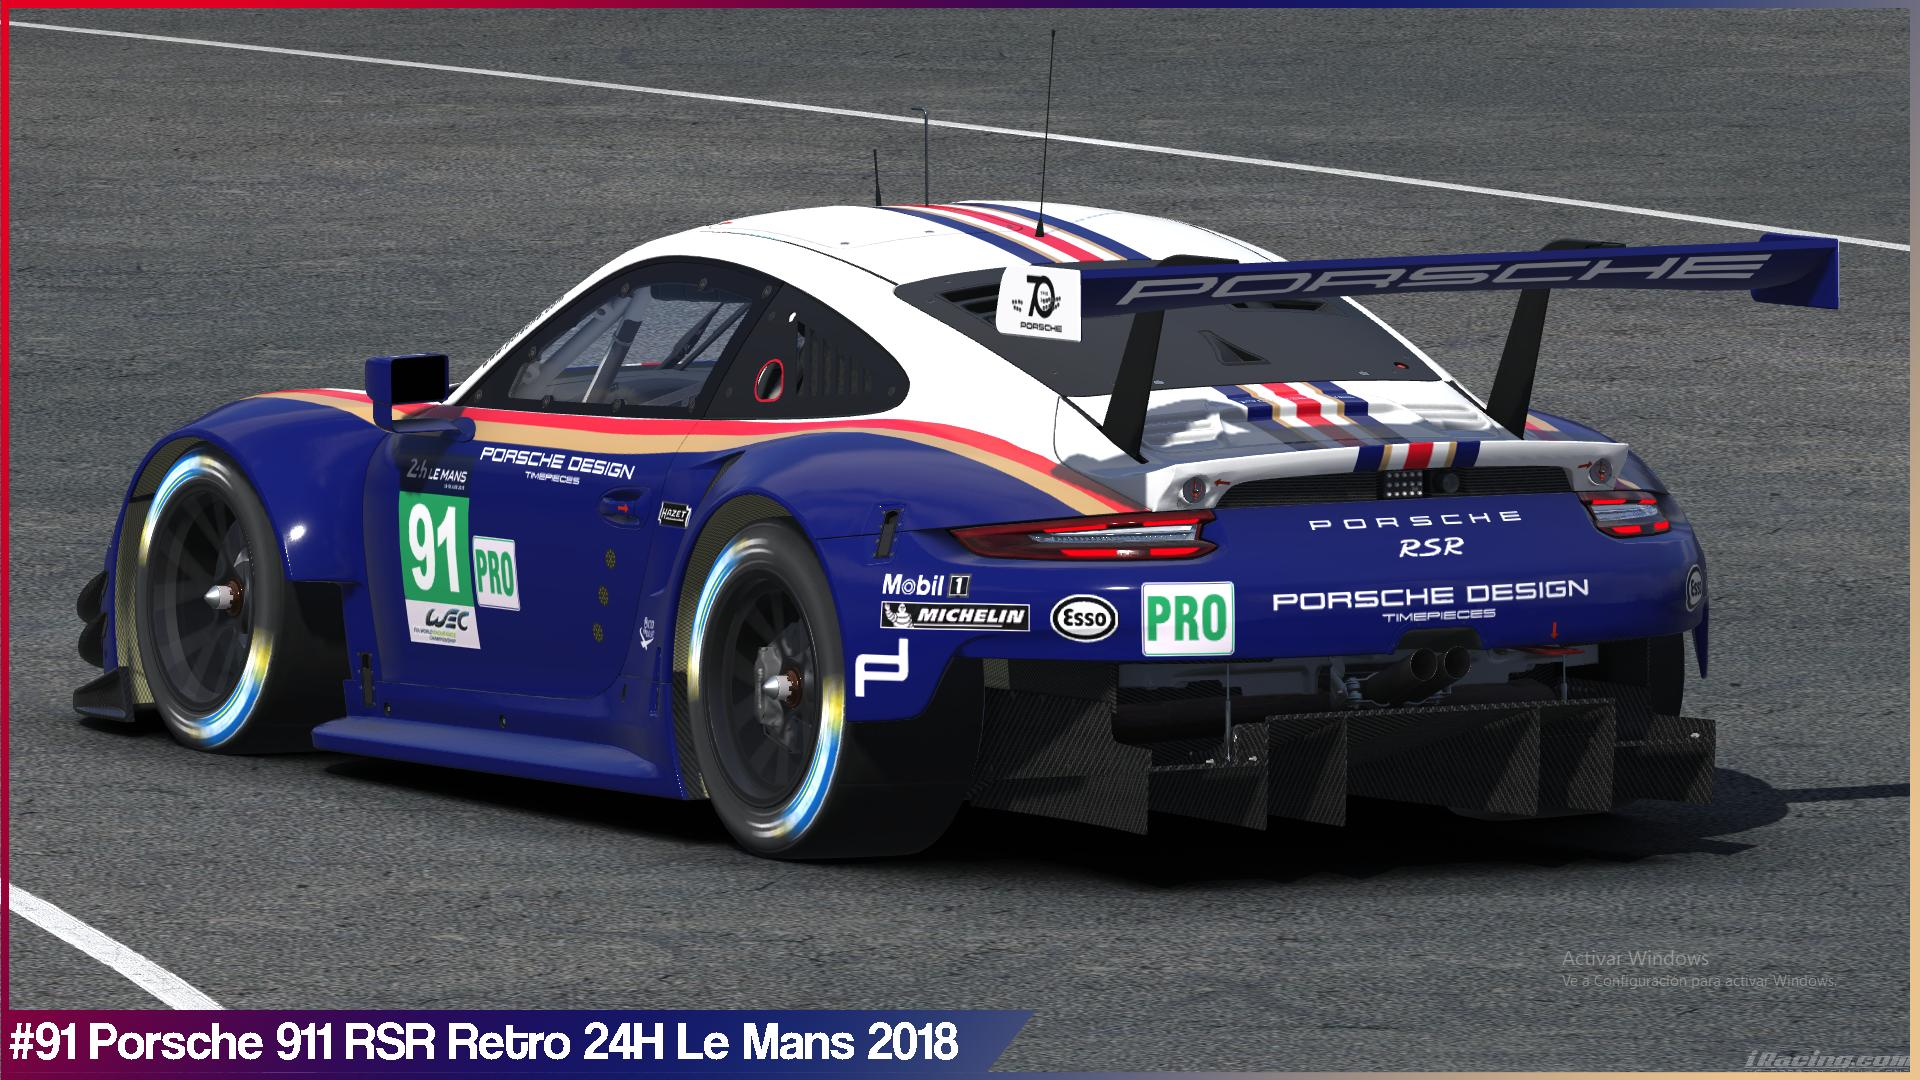 91 porsche retro 24h le mans 2018 by sergio hernando trading paints. Black Bedroom Furniture Sets. Home Design Ideas